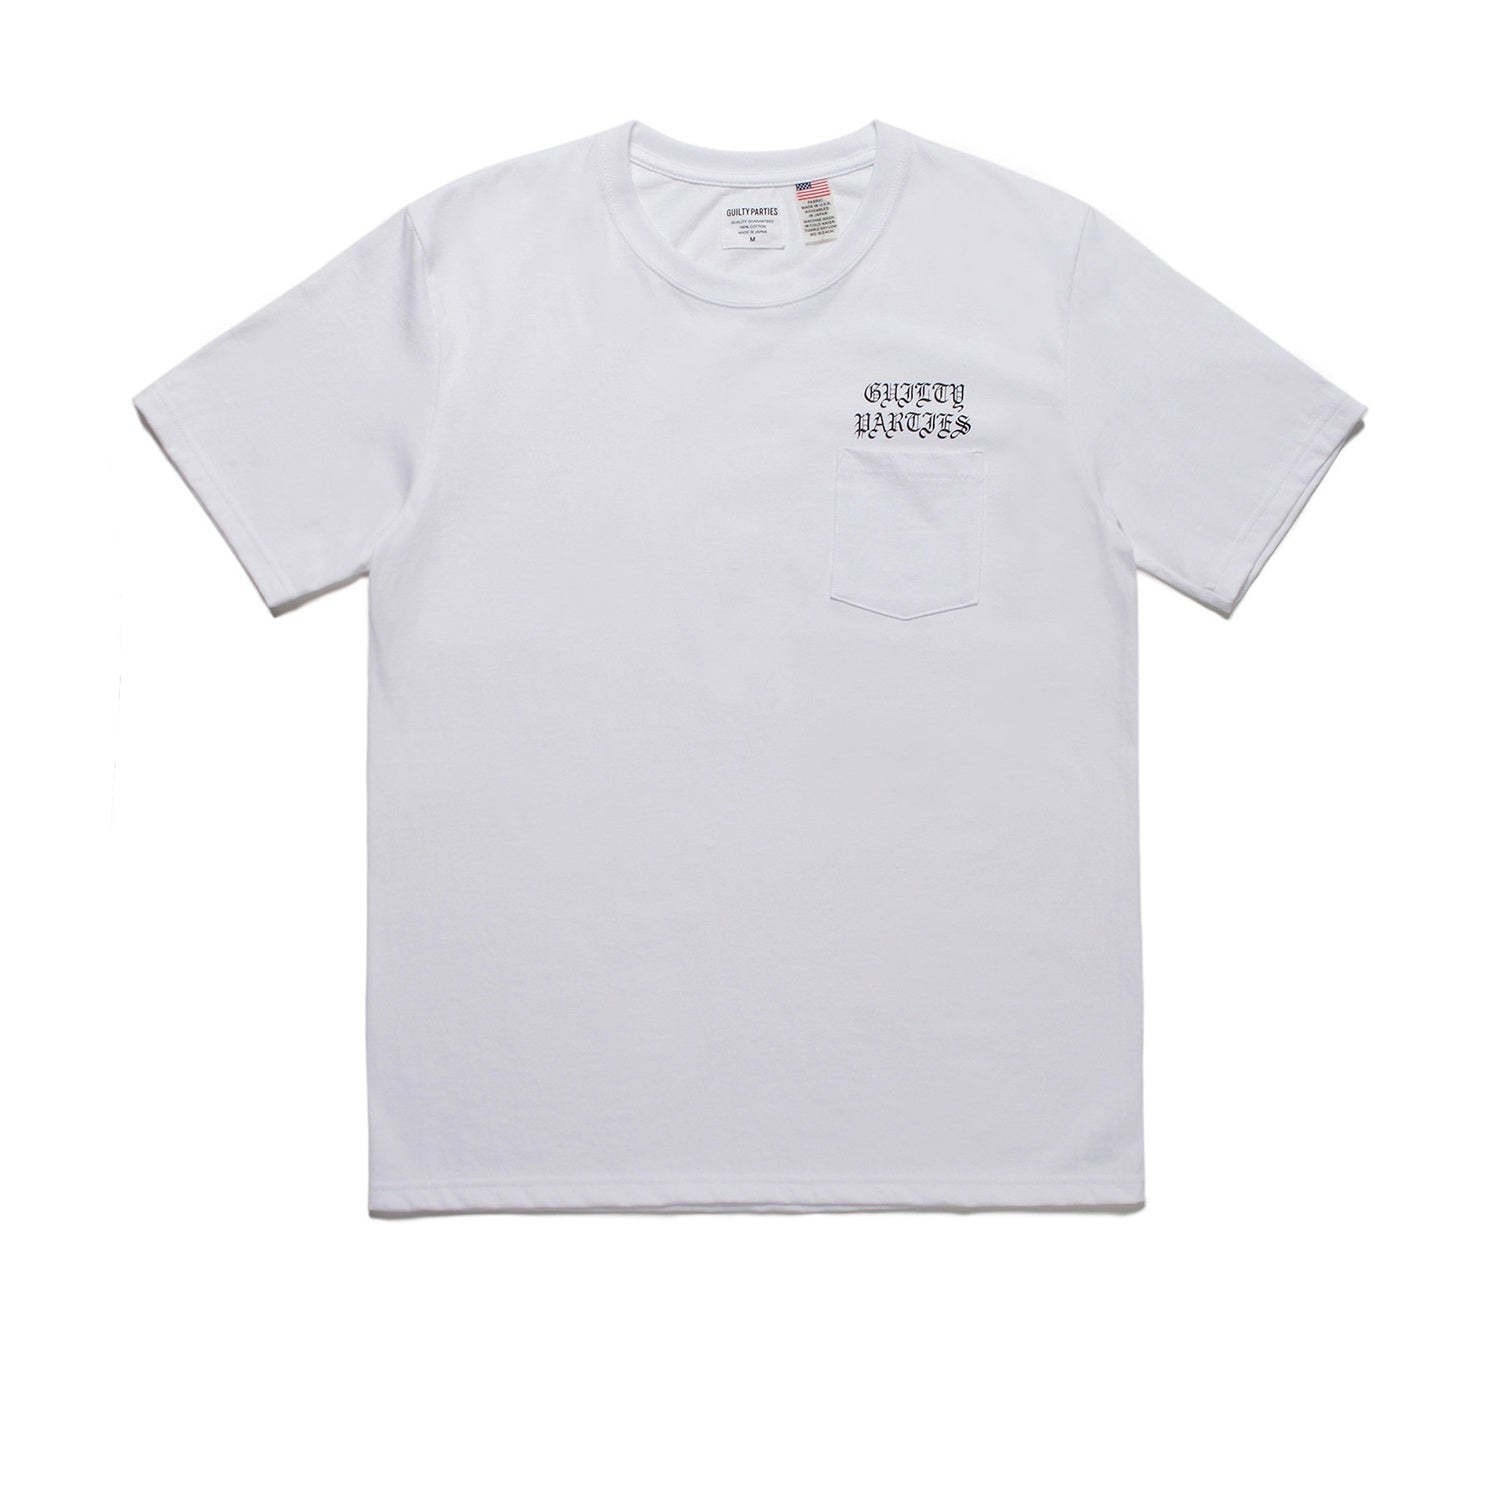 Wacko Maria Crew Neck Pocket T-shirt - White